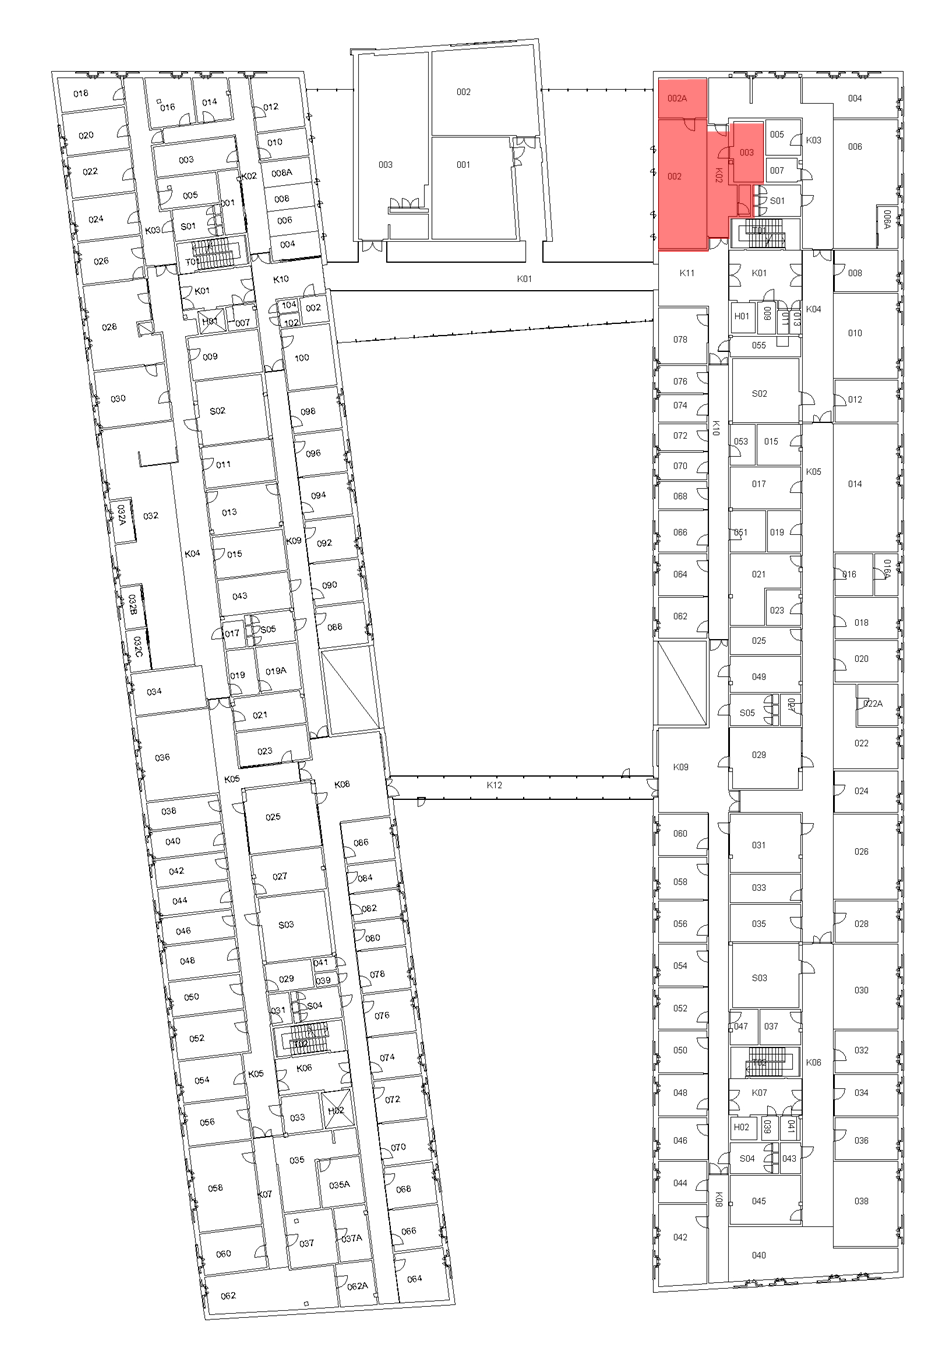 Map of Laboratory Center